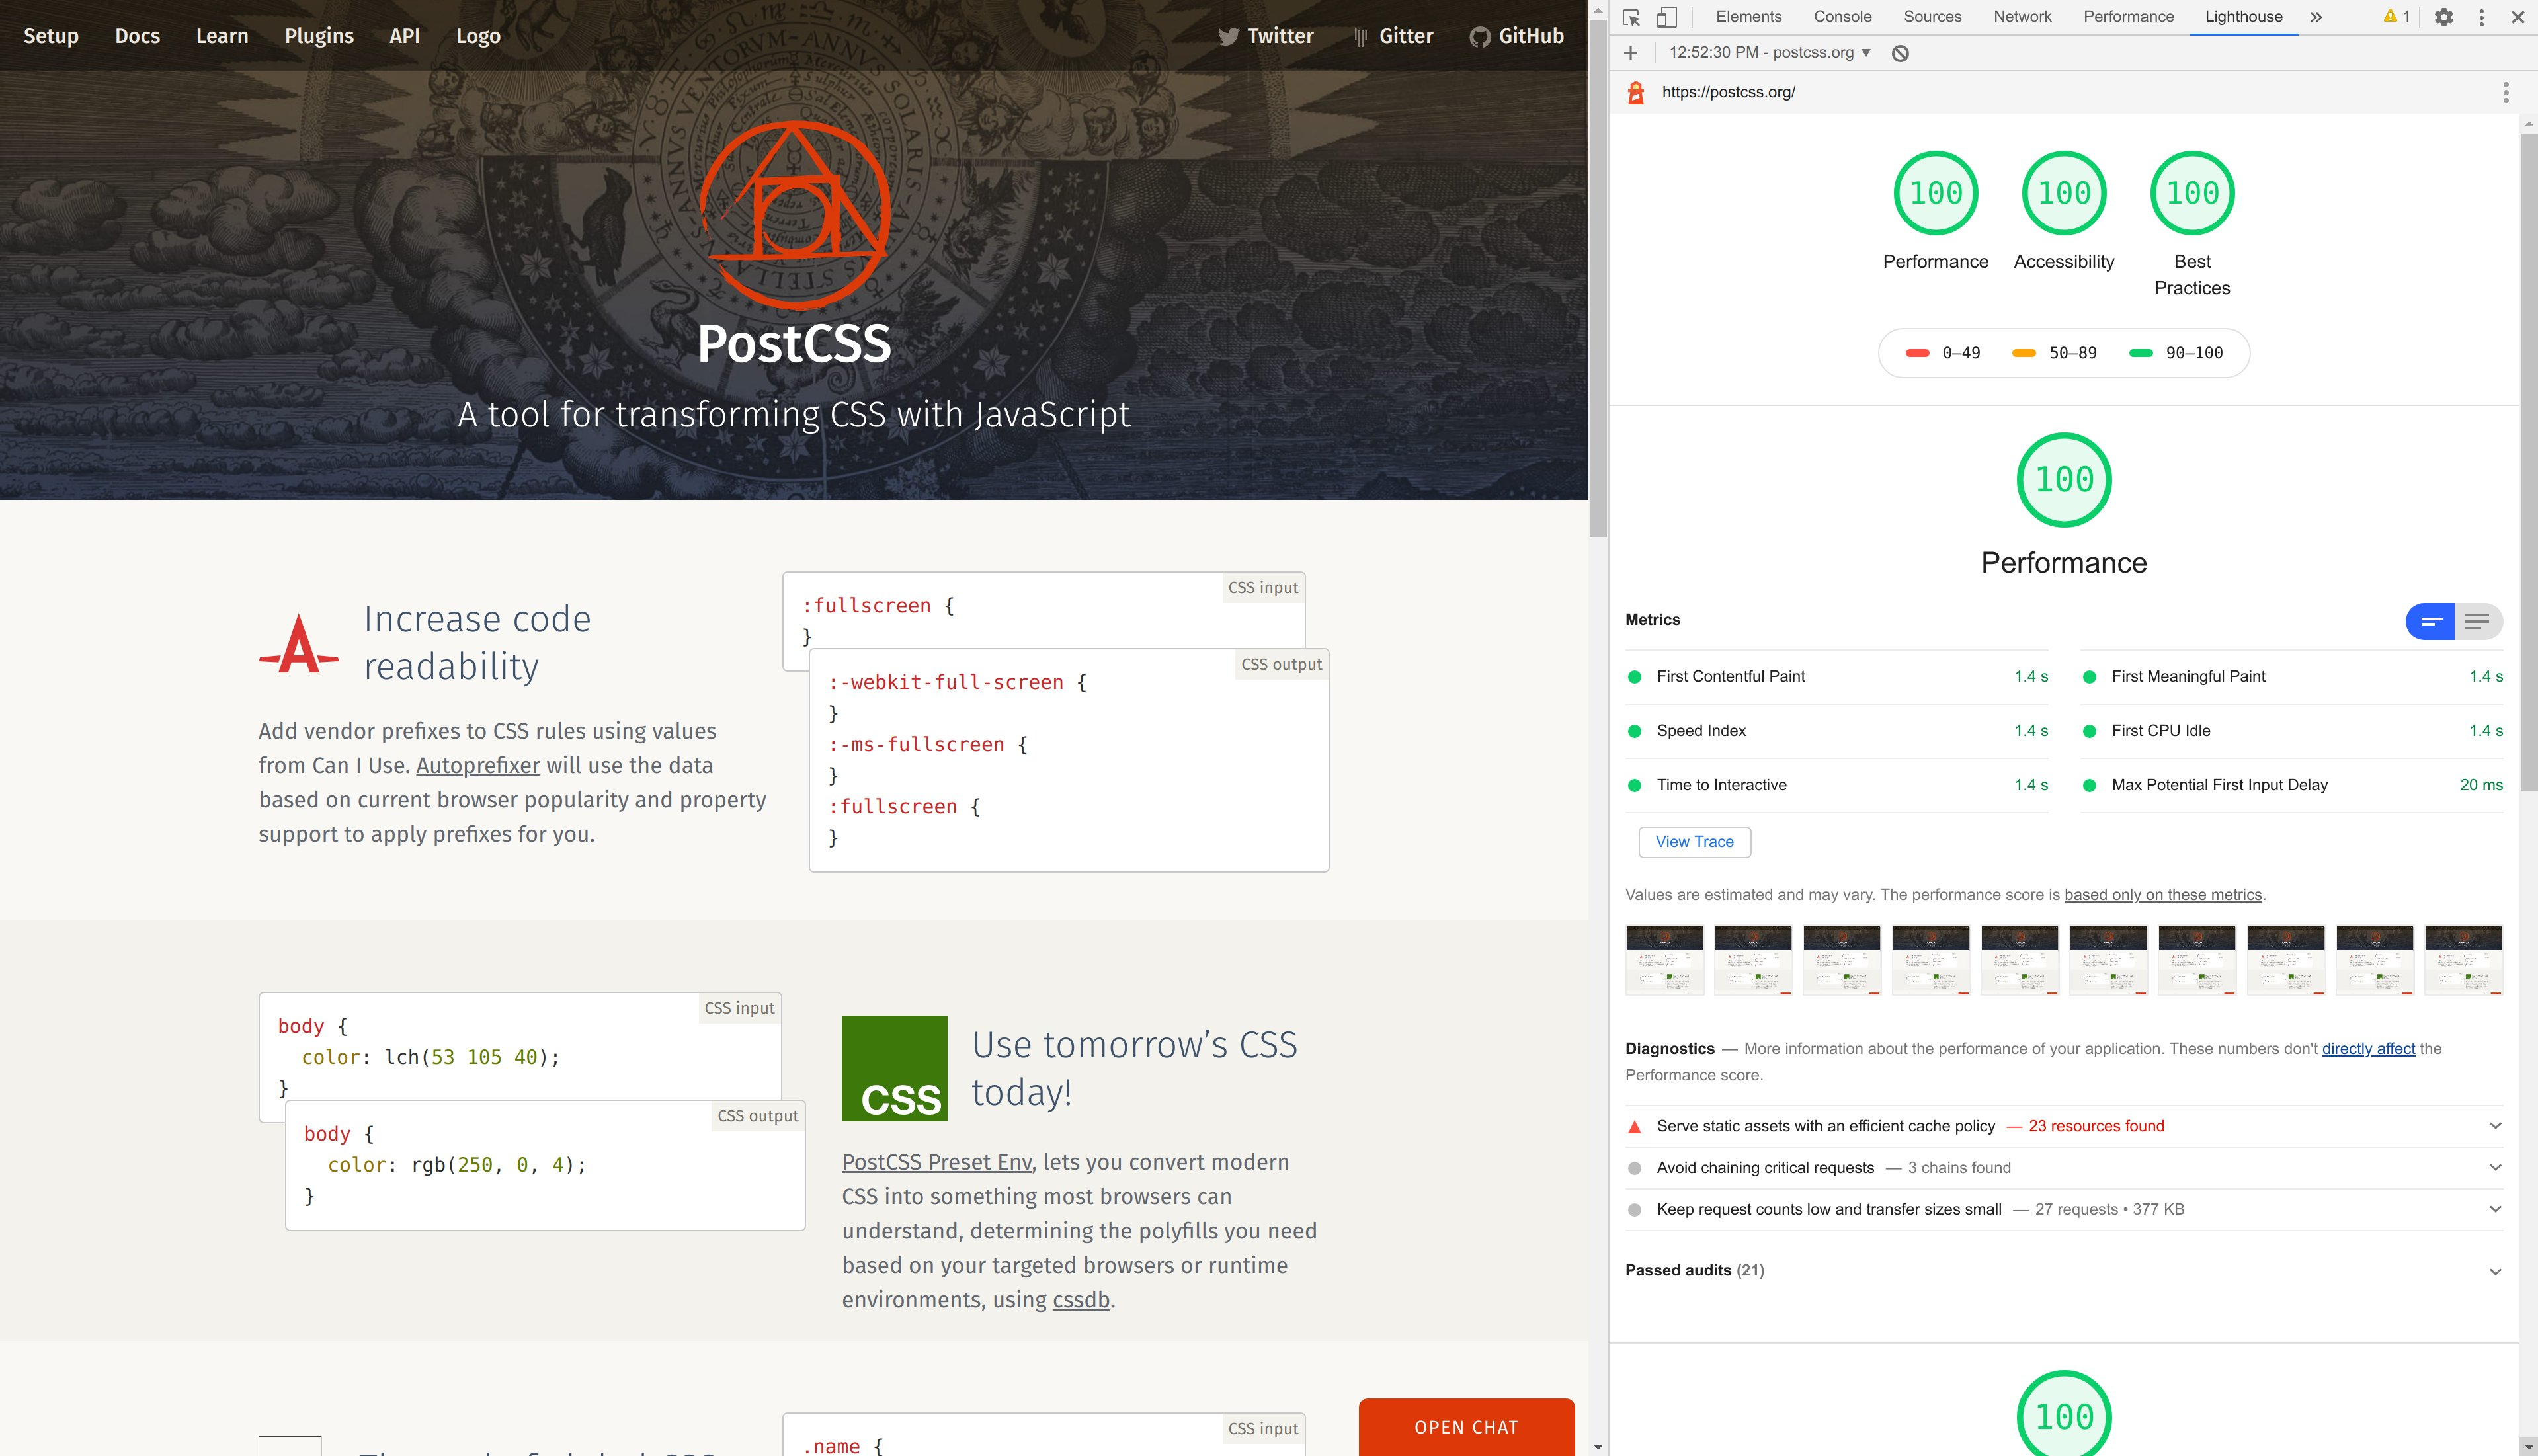 PostCSS website performance results